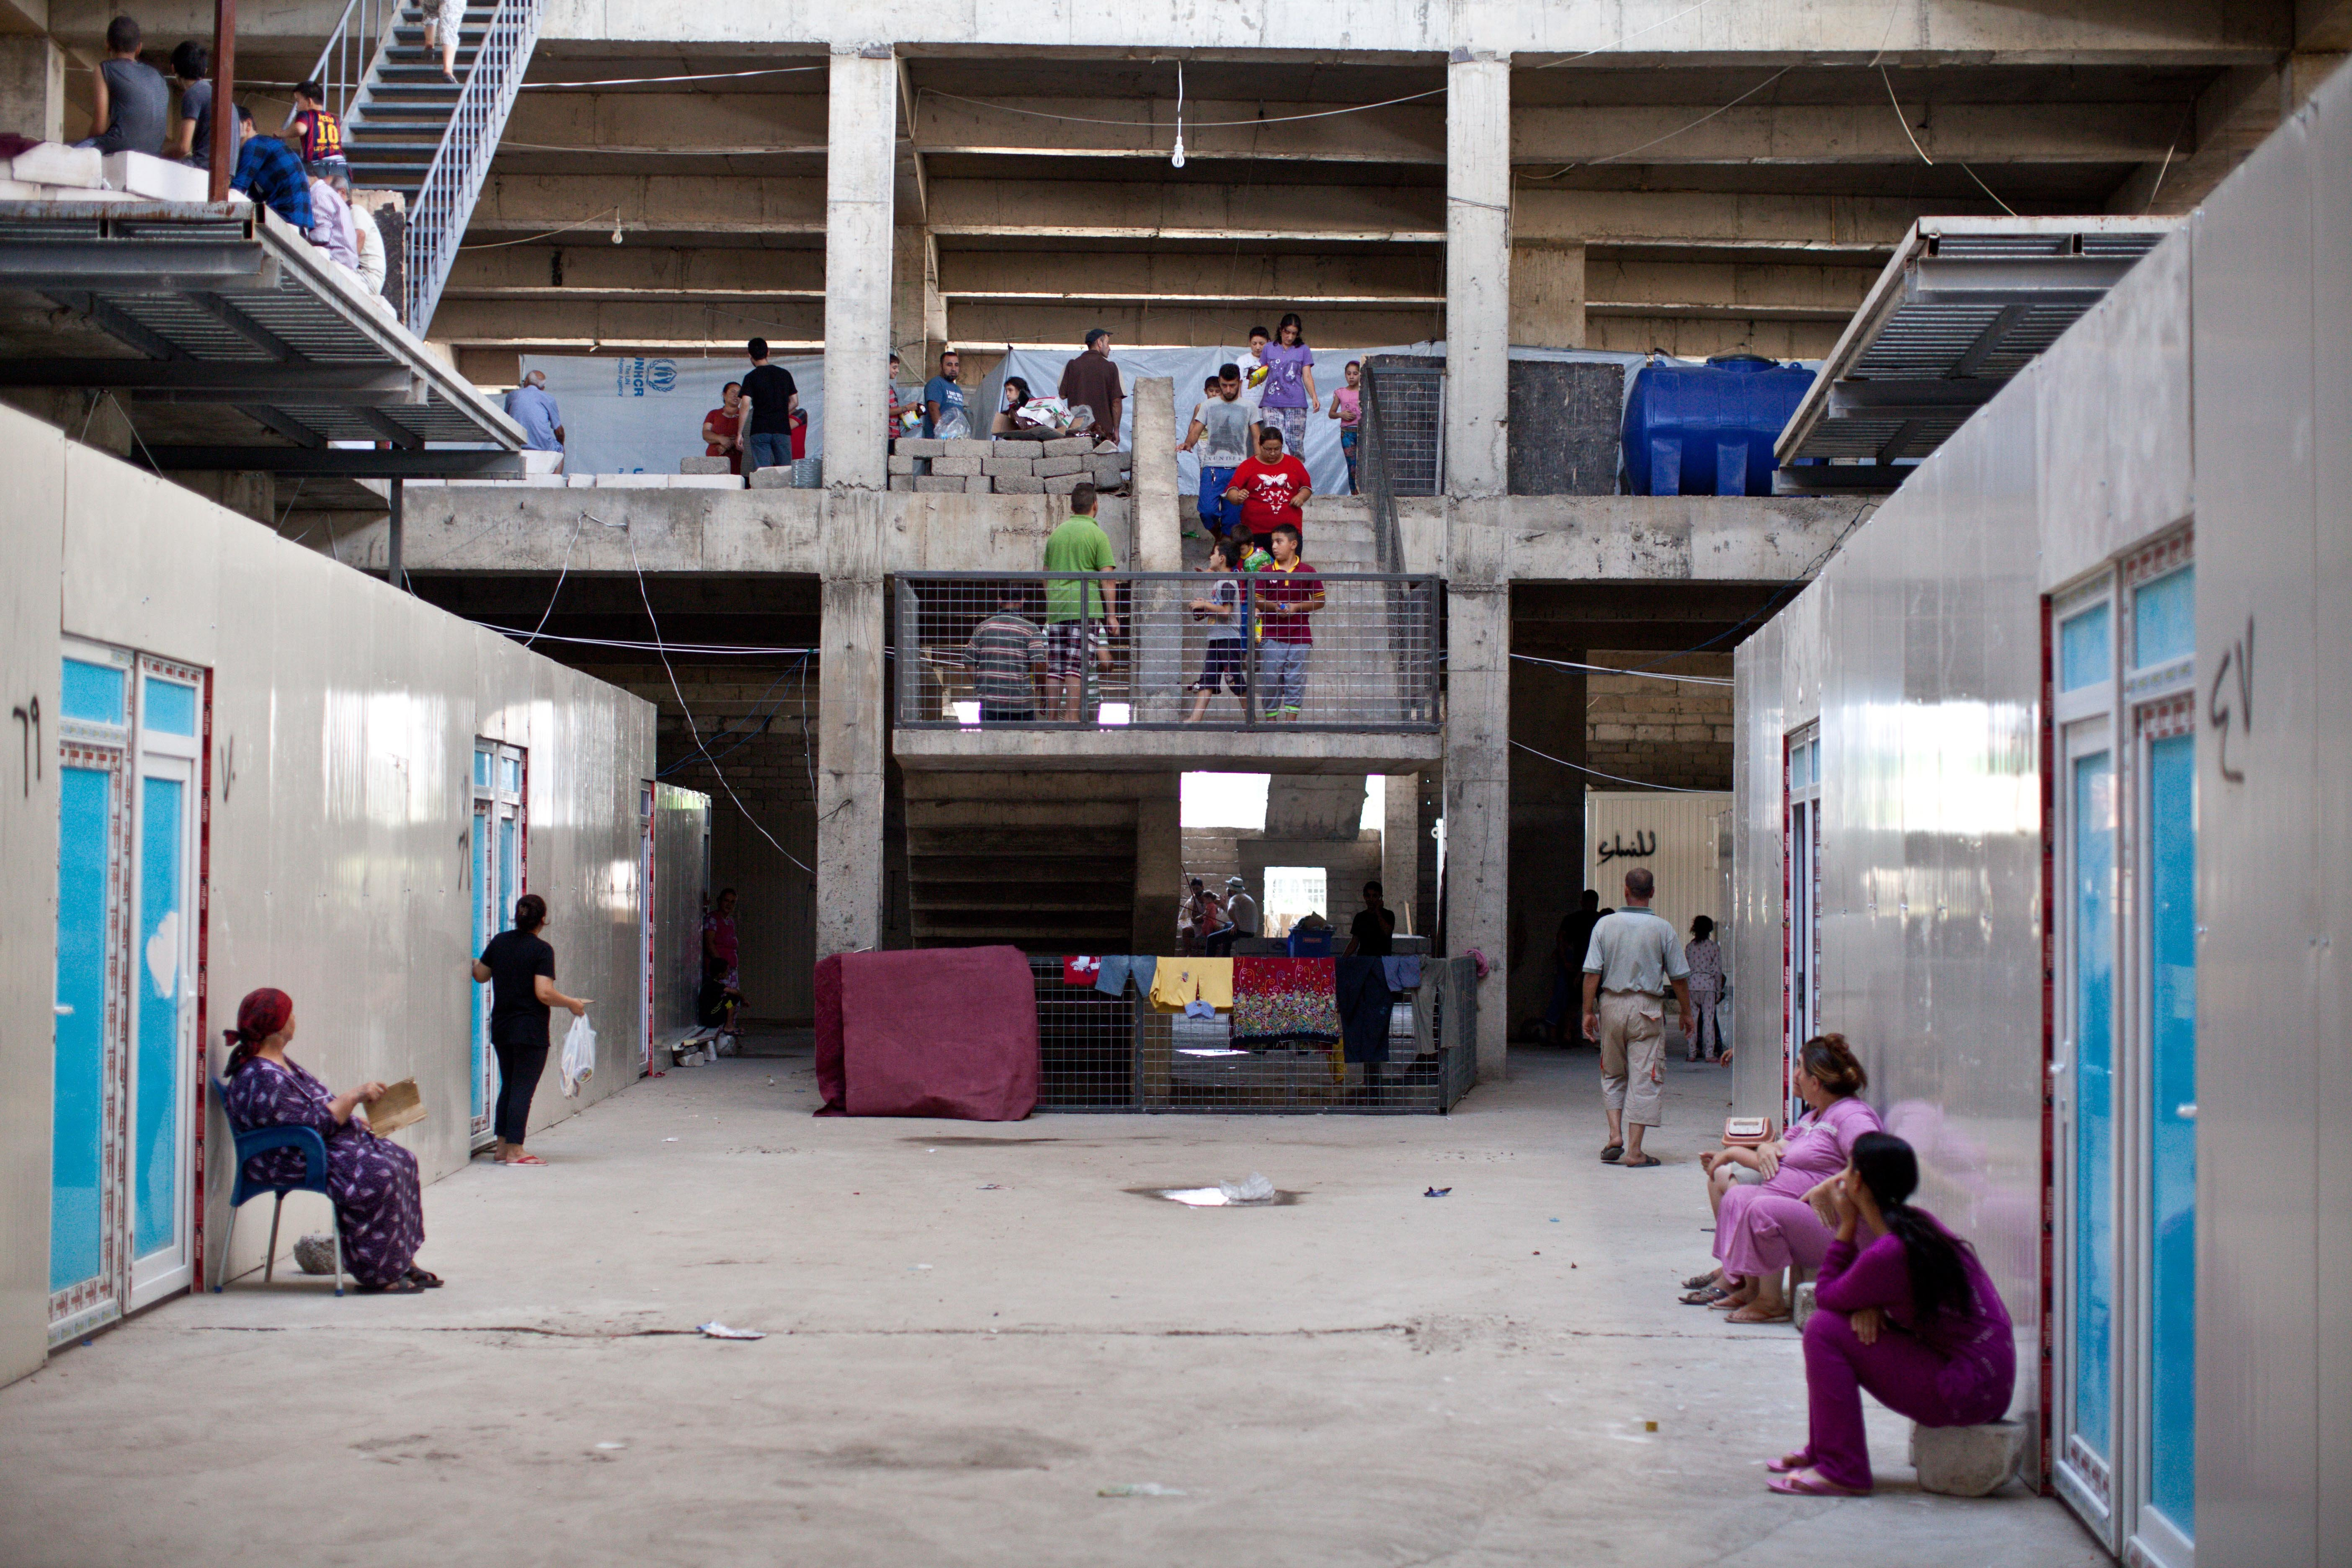 ERBIL, IRAQ: The interior of a building that is now inhabited by displaced Iraqi Christians. Photograph by Sebastian Meyer